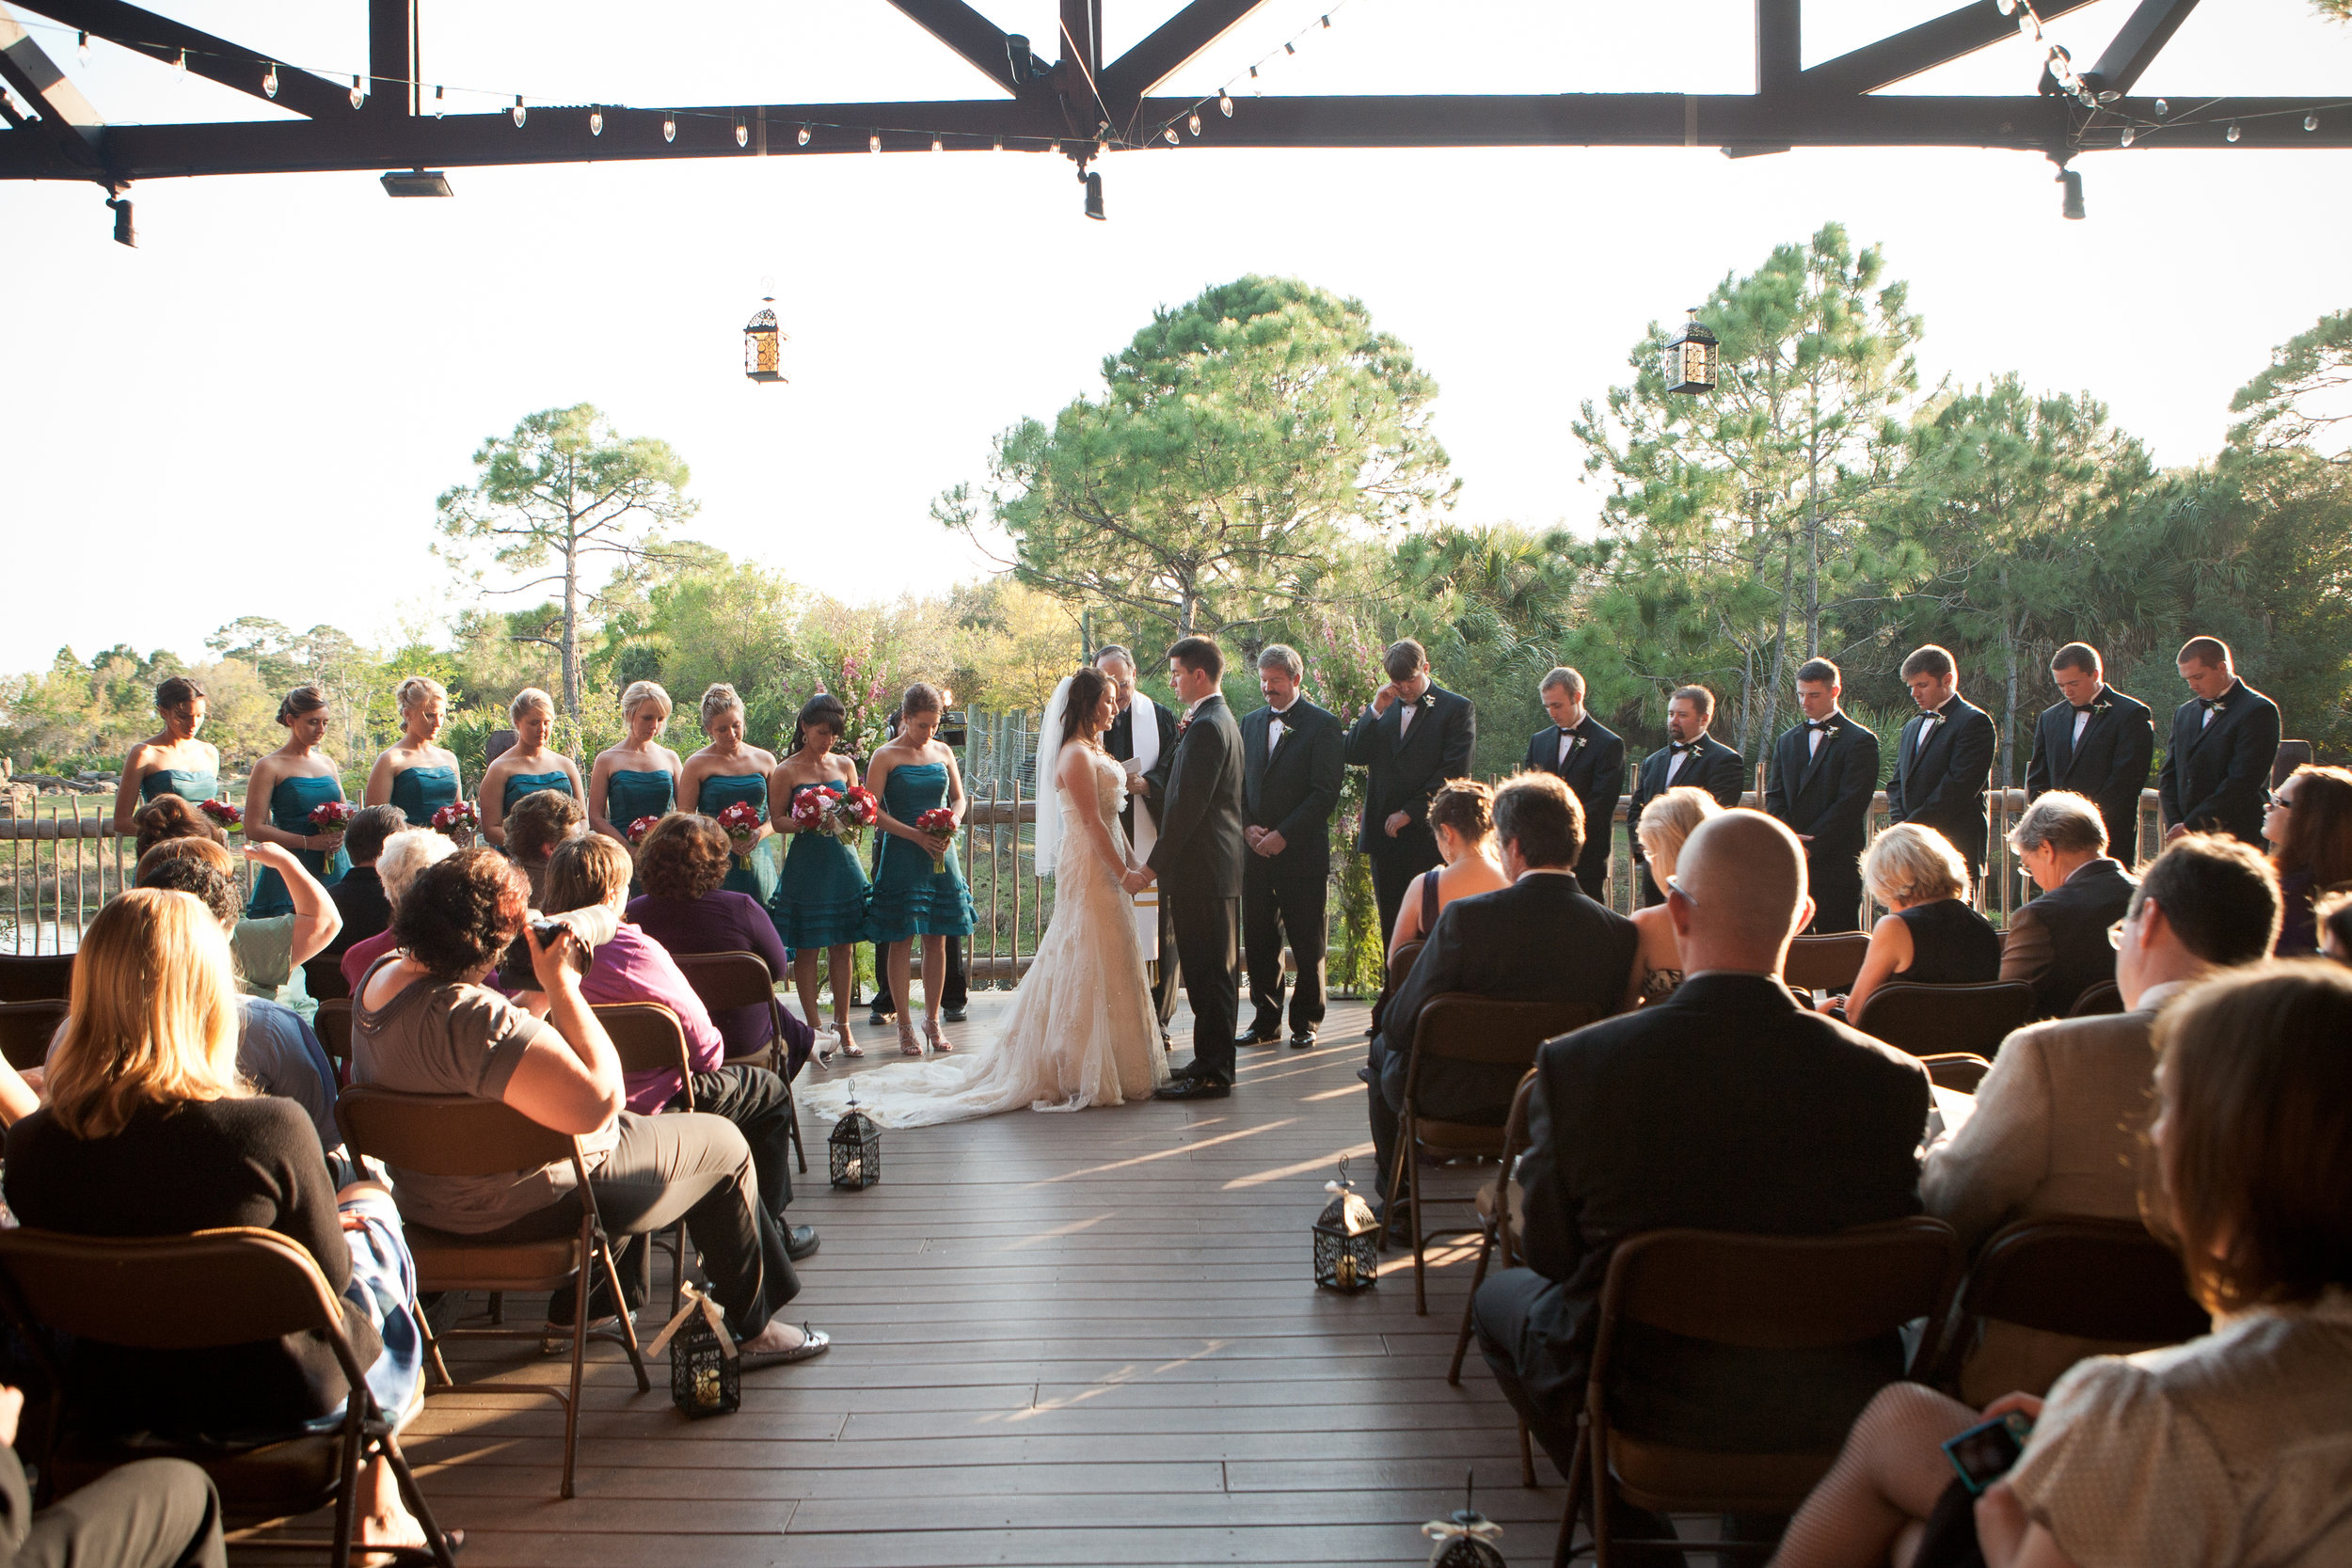 Brevard-Zo-wedding-Melbourne-florida-13.jpg